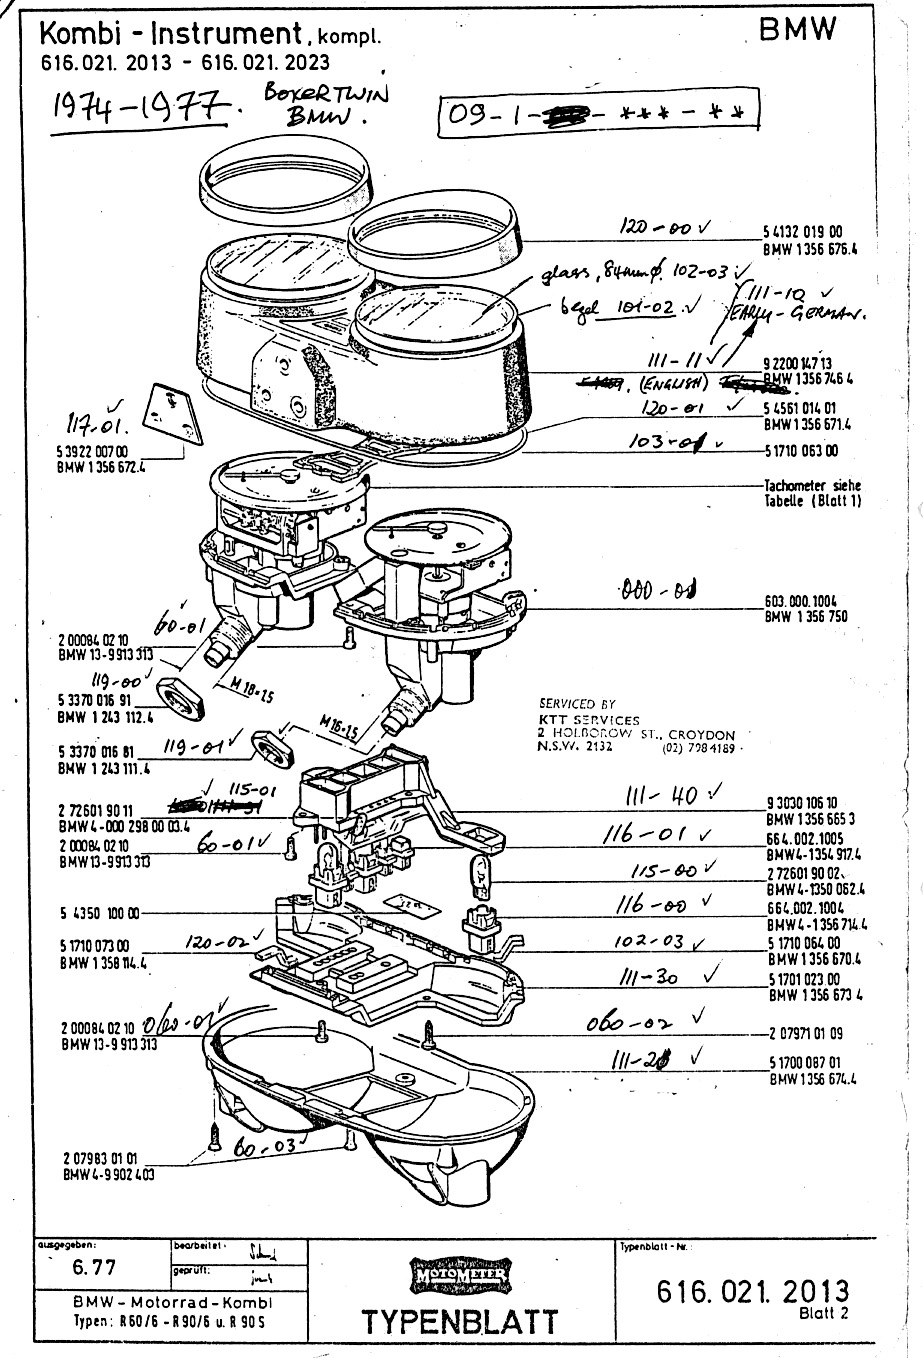 Jeep Cj7 Steering Column Wiring Diagram Chris Craft Wiring Diagram